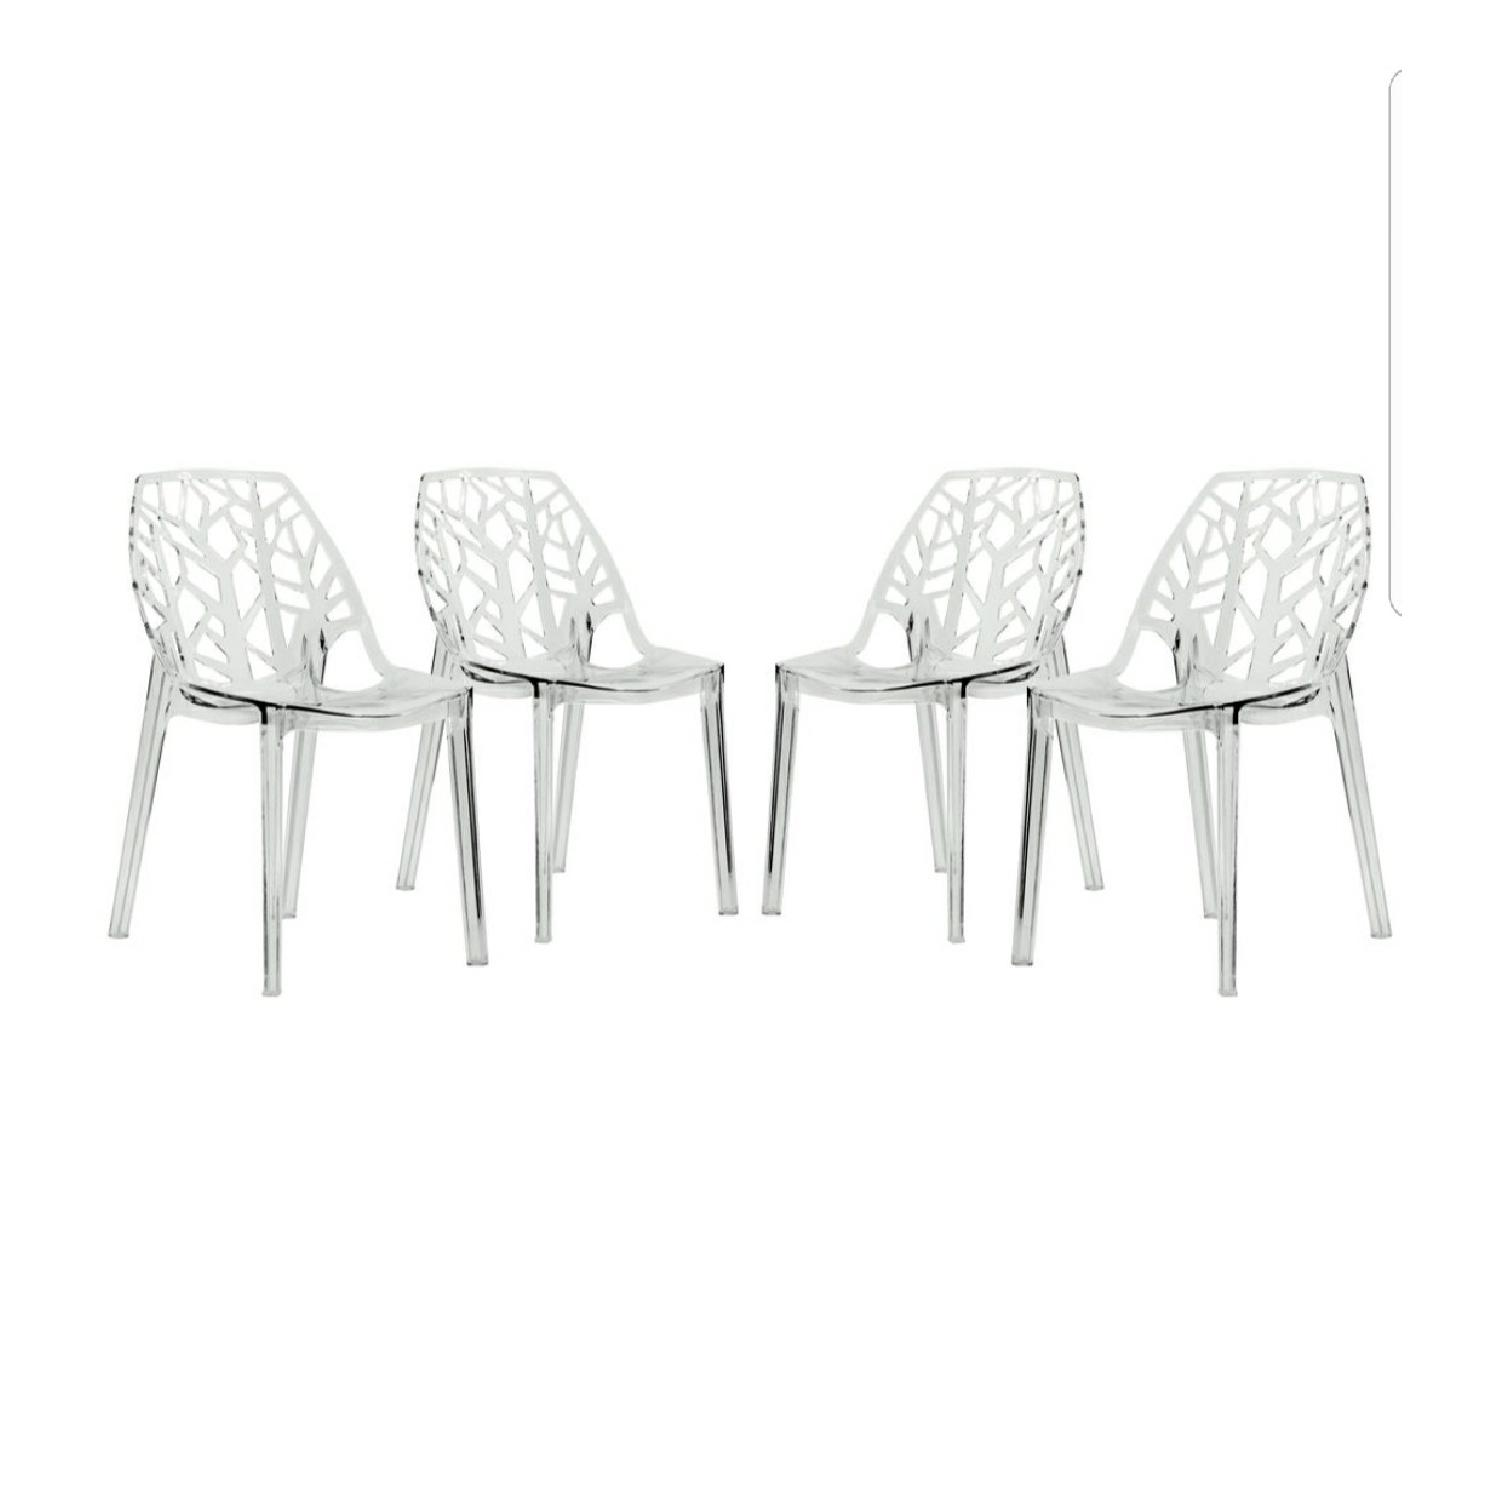 LeisureMod Cornelia Cut-Out Tree Design Modern Dining Chairs-3